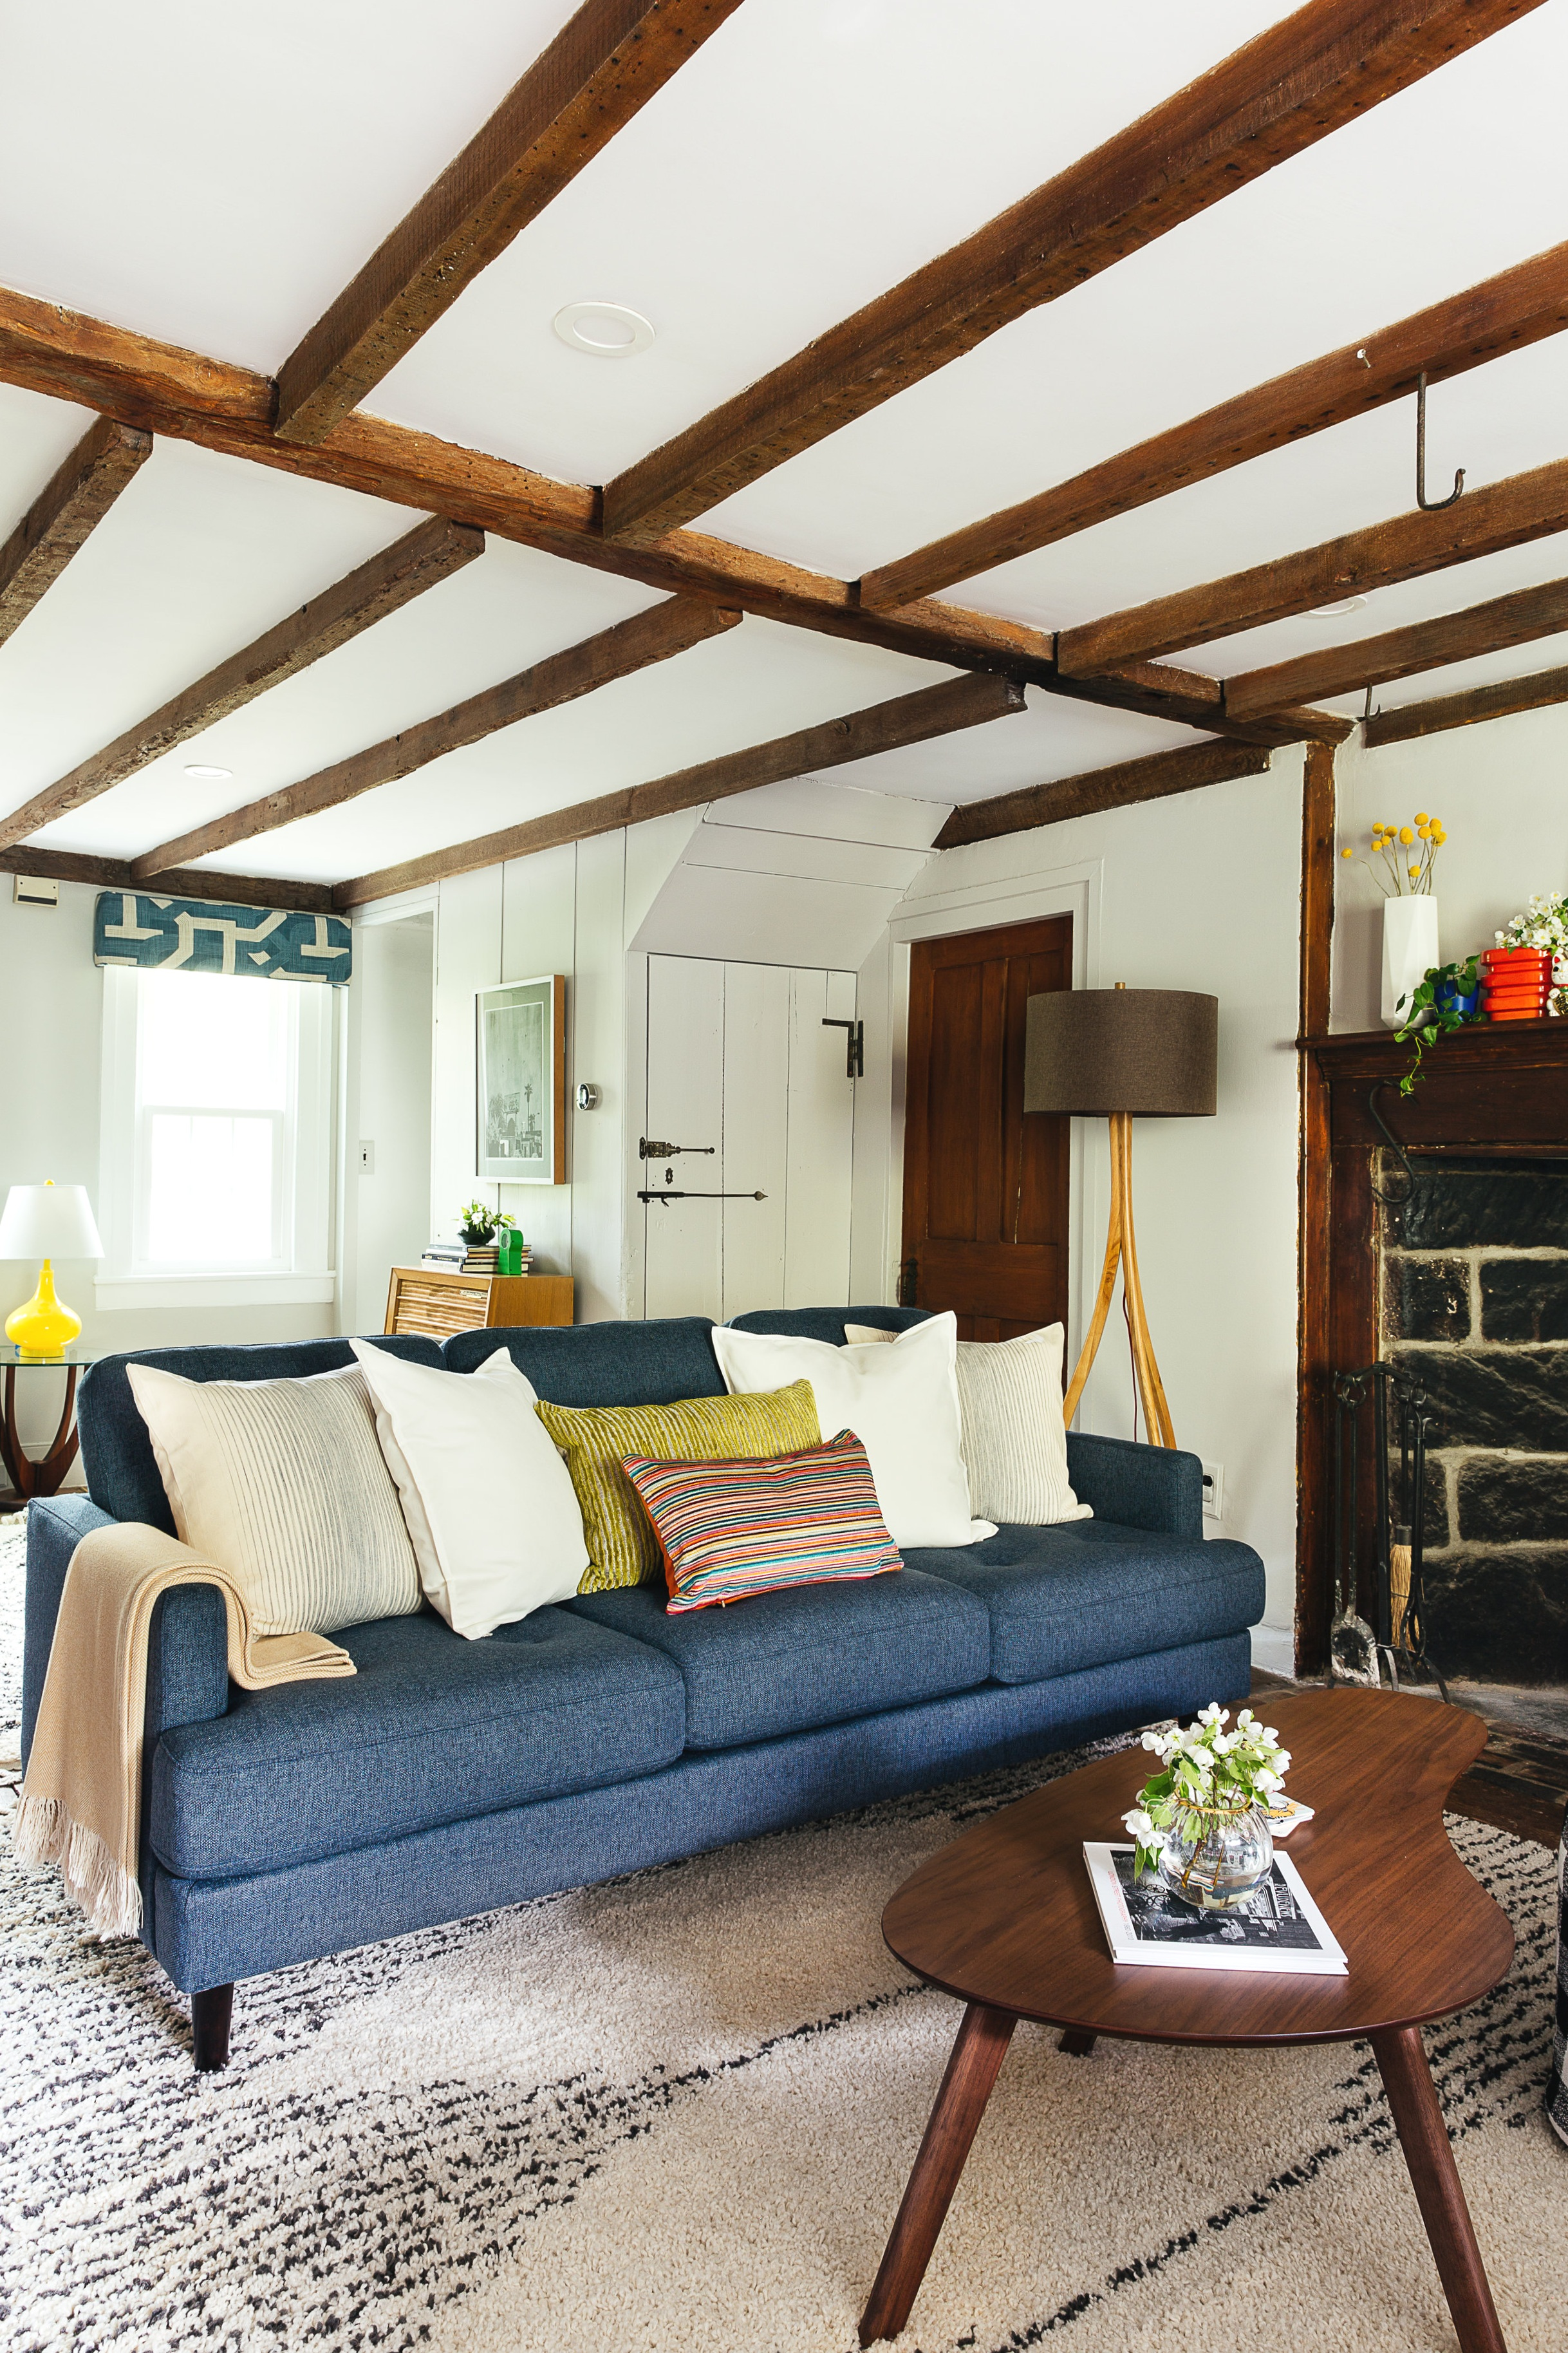 Antique+farmhouse+turned+mid+mod+living+room+design+with+fireplace+by+the+rath+project